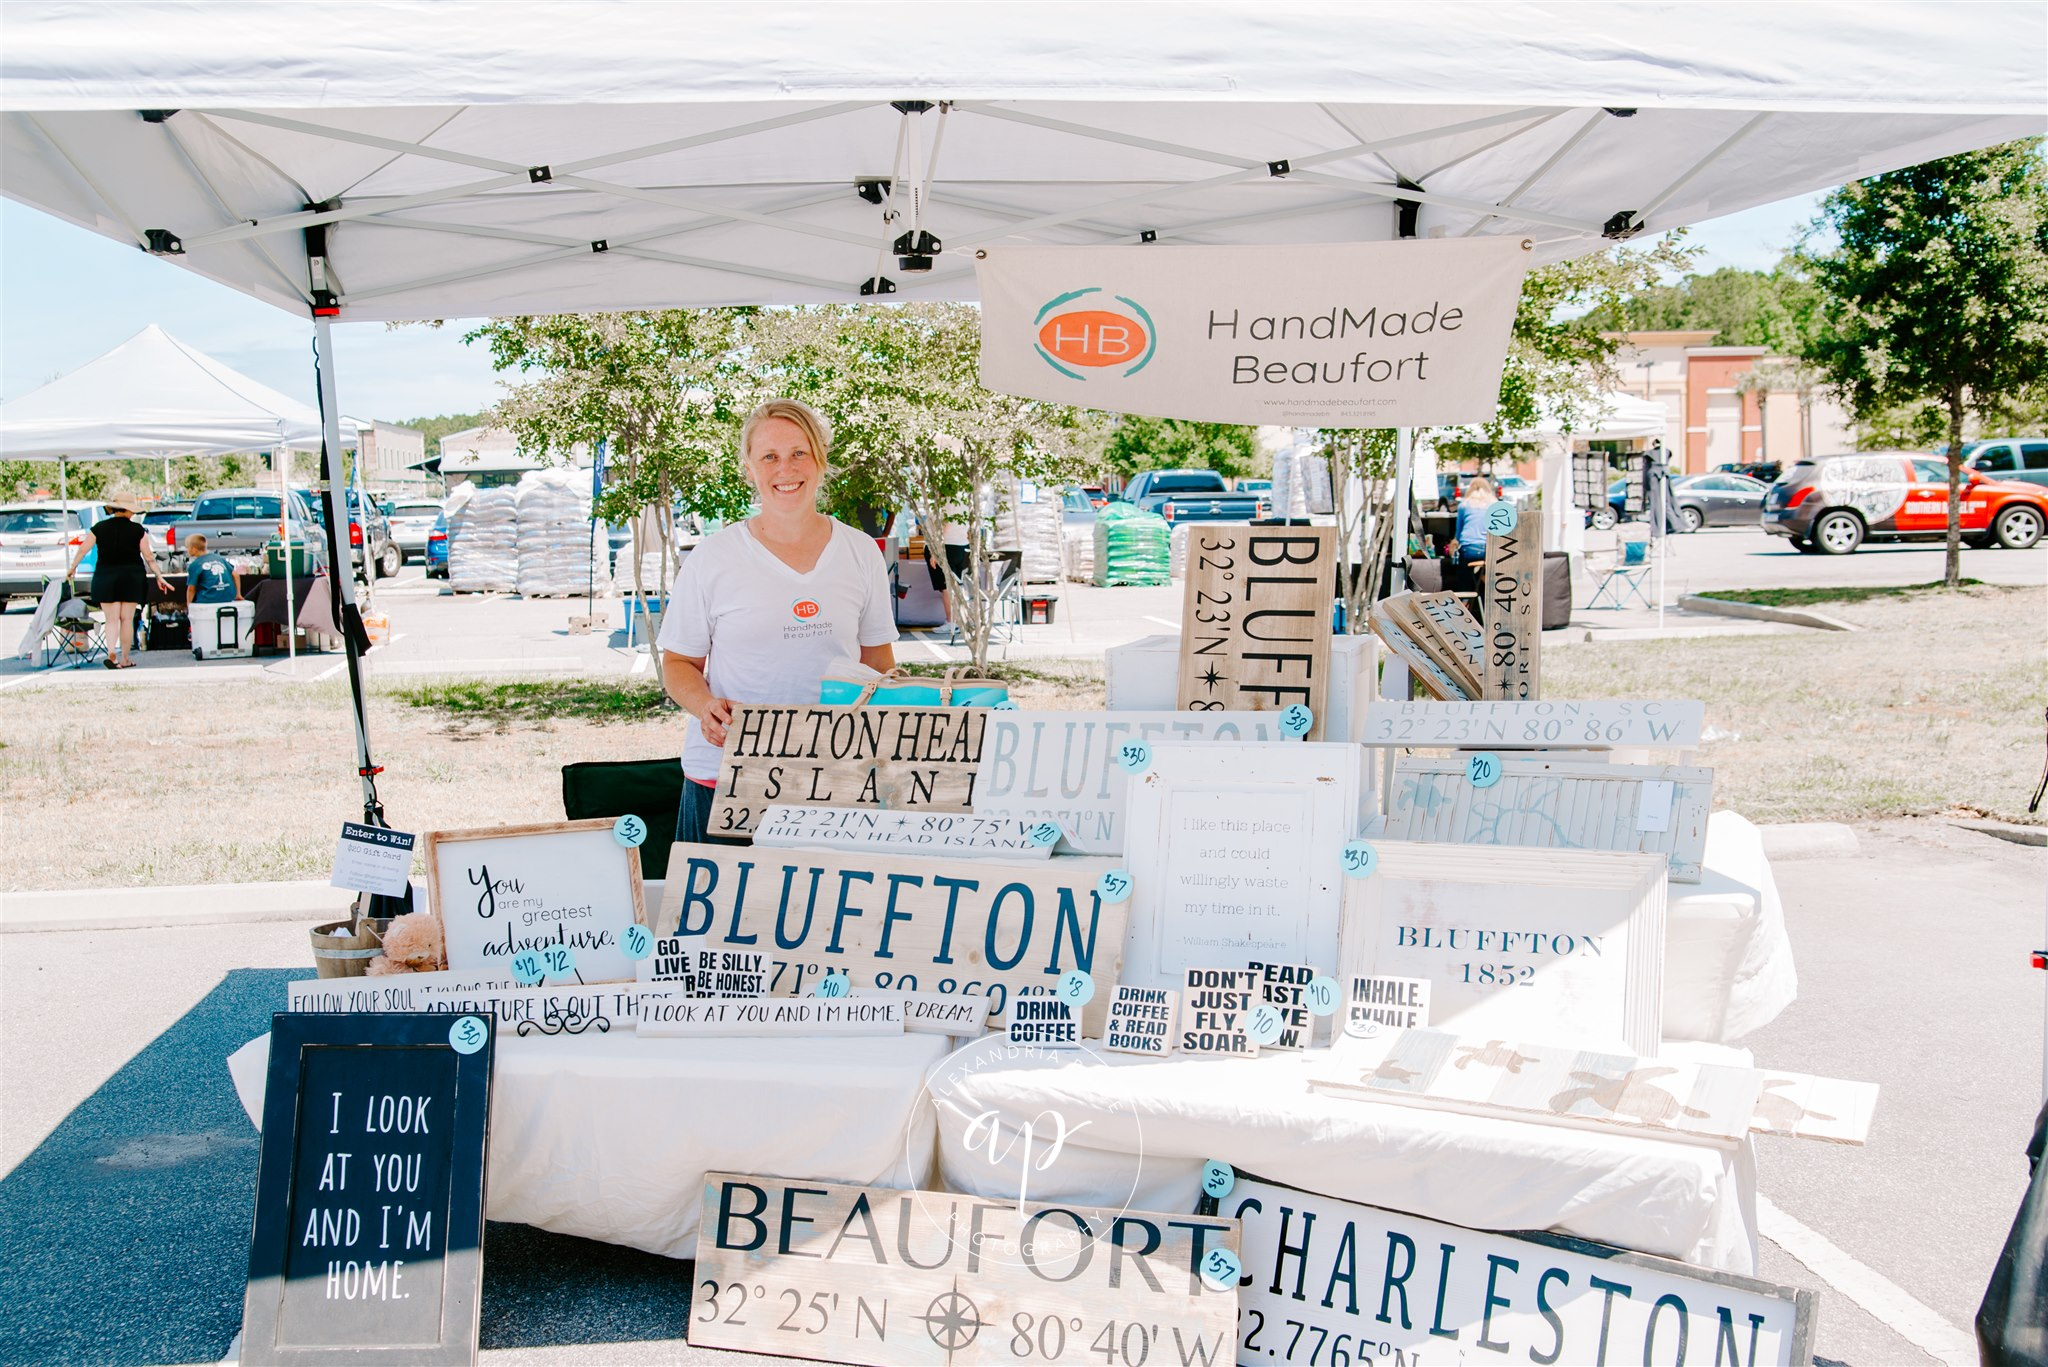 Markets & Events Handmade Beaufort